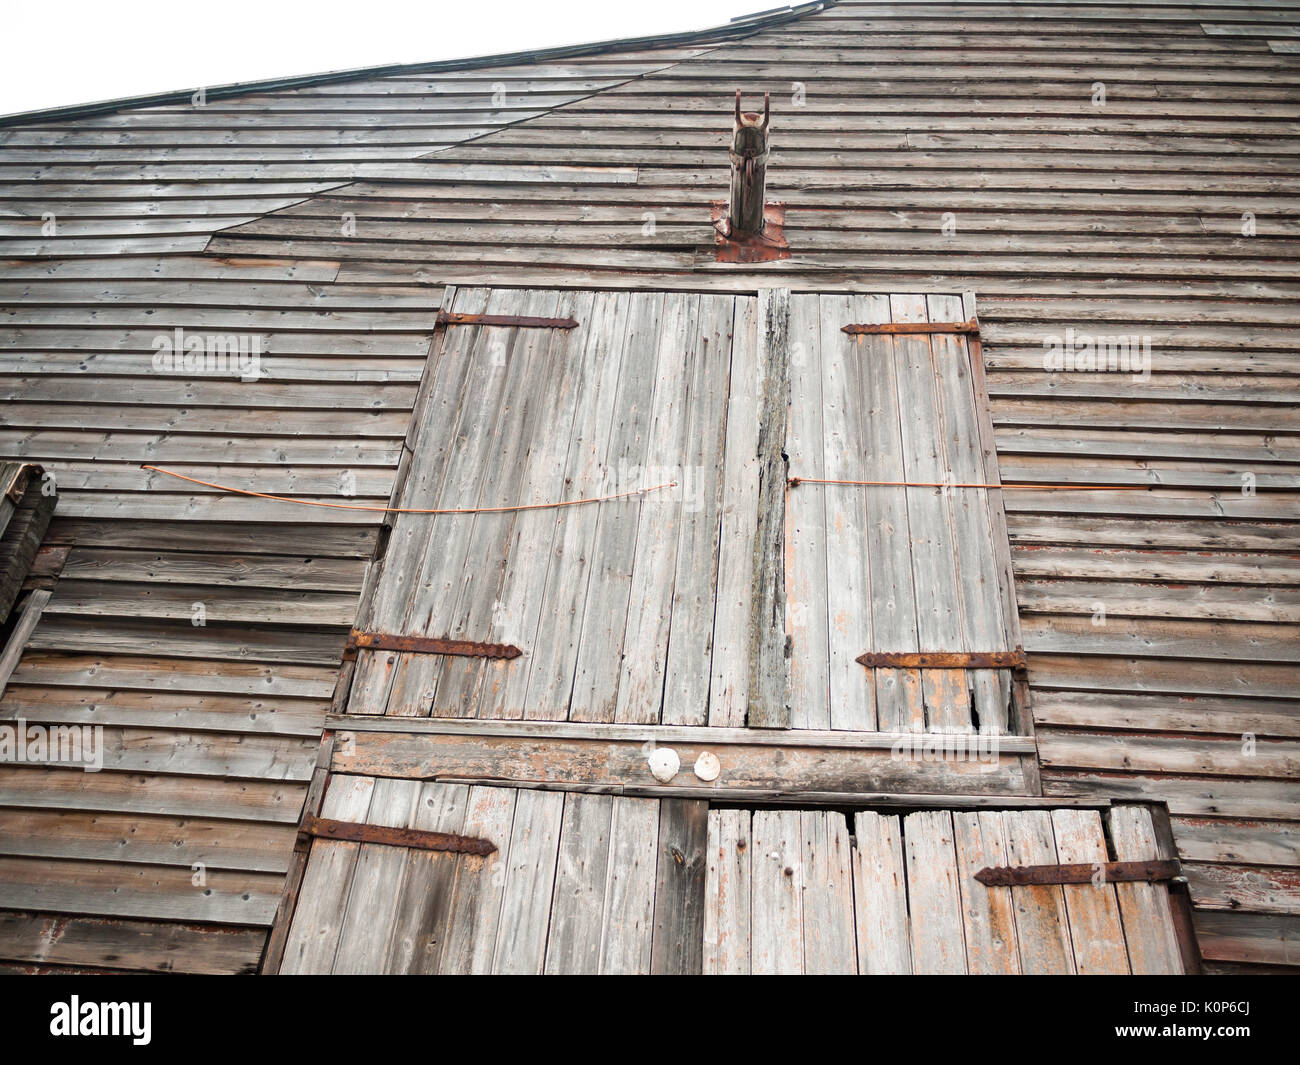 front of wooden old house rural shipbuilding yard special rustic; England; UK - Stock Image